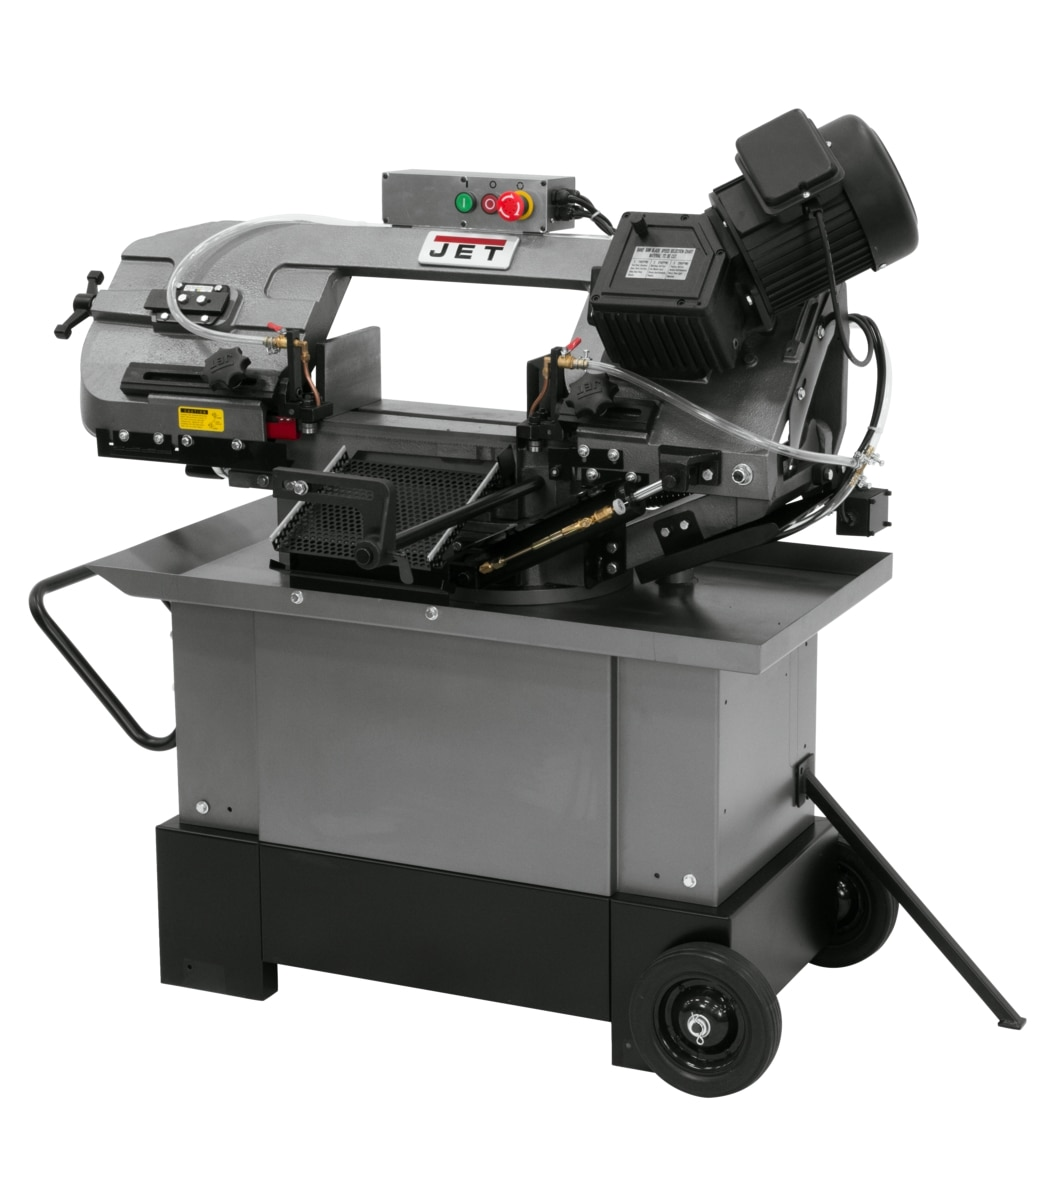 "HVBS-710G, 7"" x 10-1/2"" Horizontal/Vertical Mitering Geared Head Bandsaw"